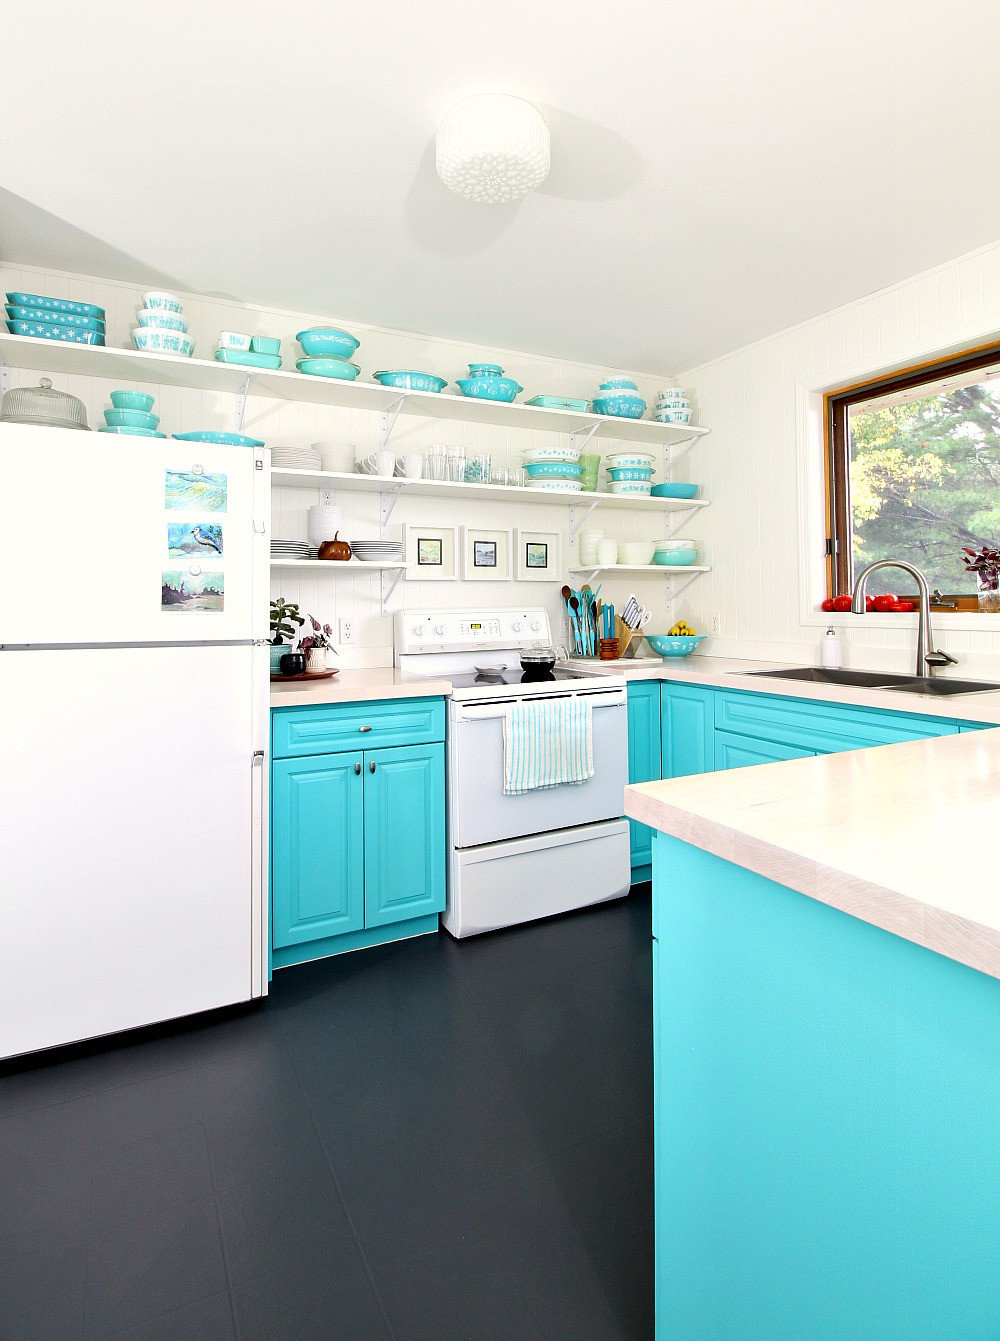 Best ideas about Painted Floors DIY . Save or Pin How to Paint a Vinyl Floor DIY Painted Floors Now.